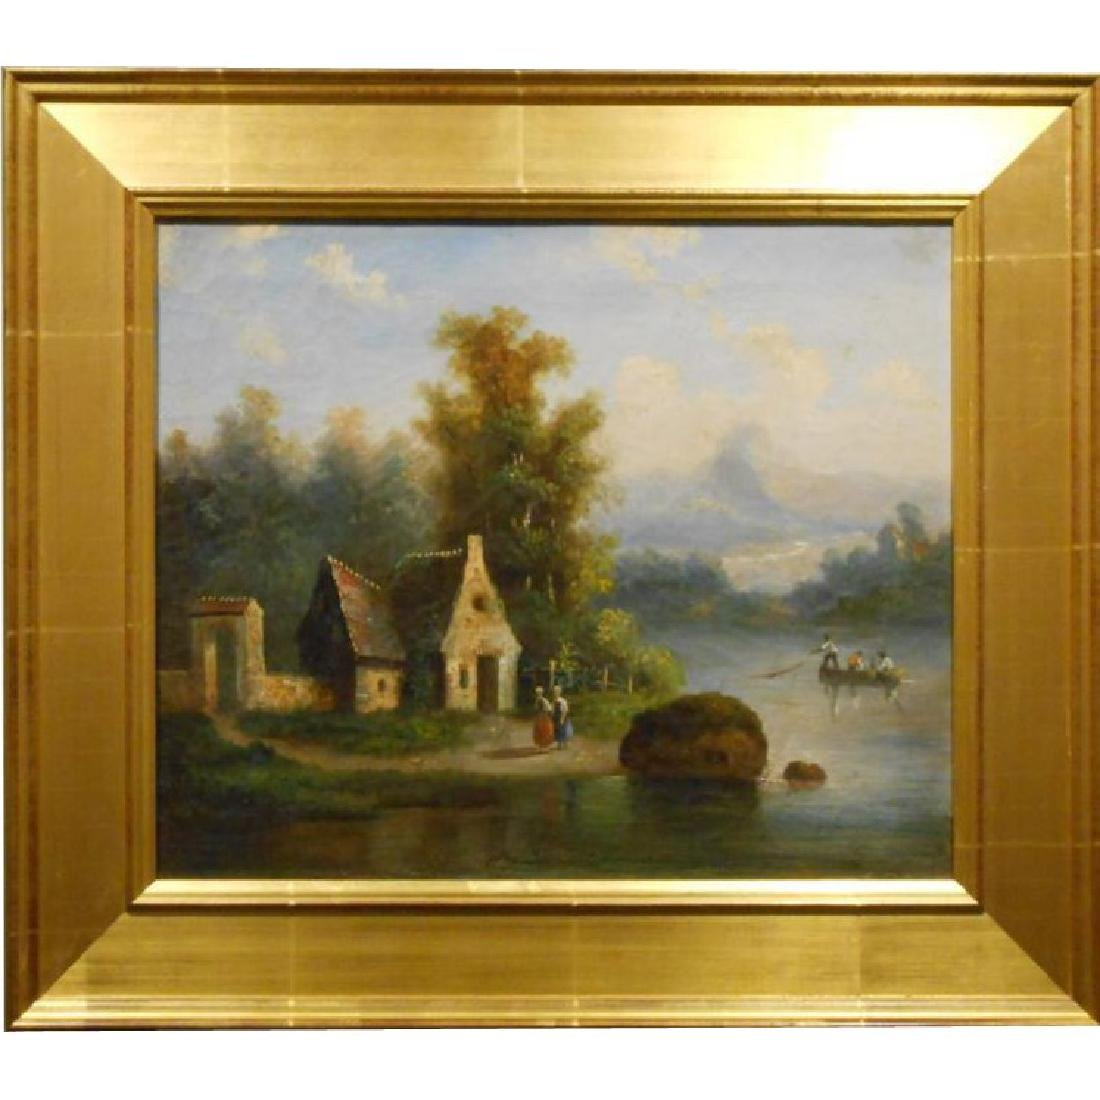 Antique Continental School Oil Painting with Fishermen